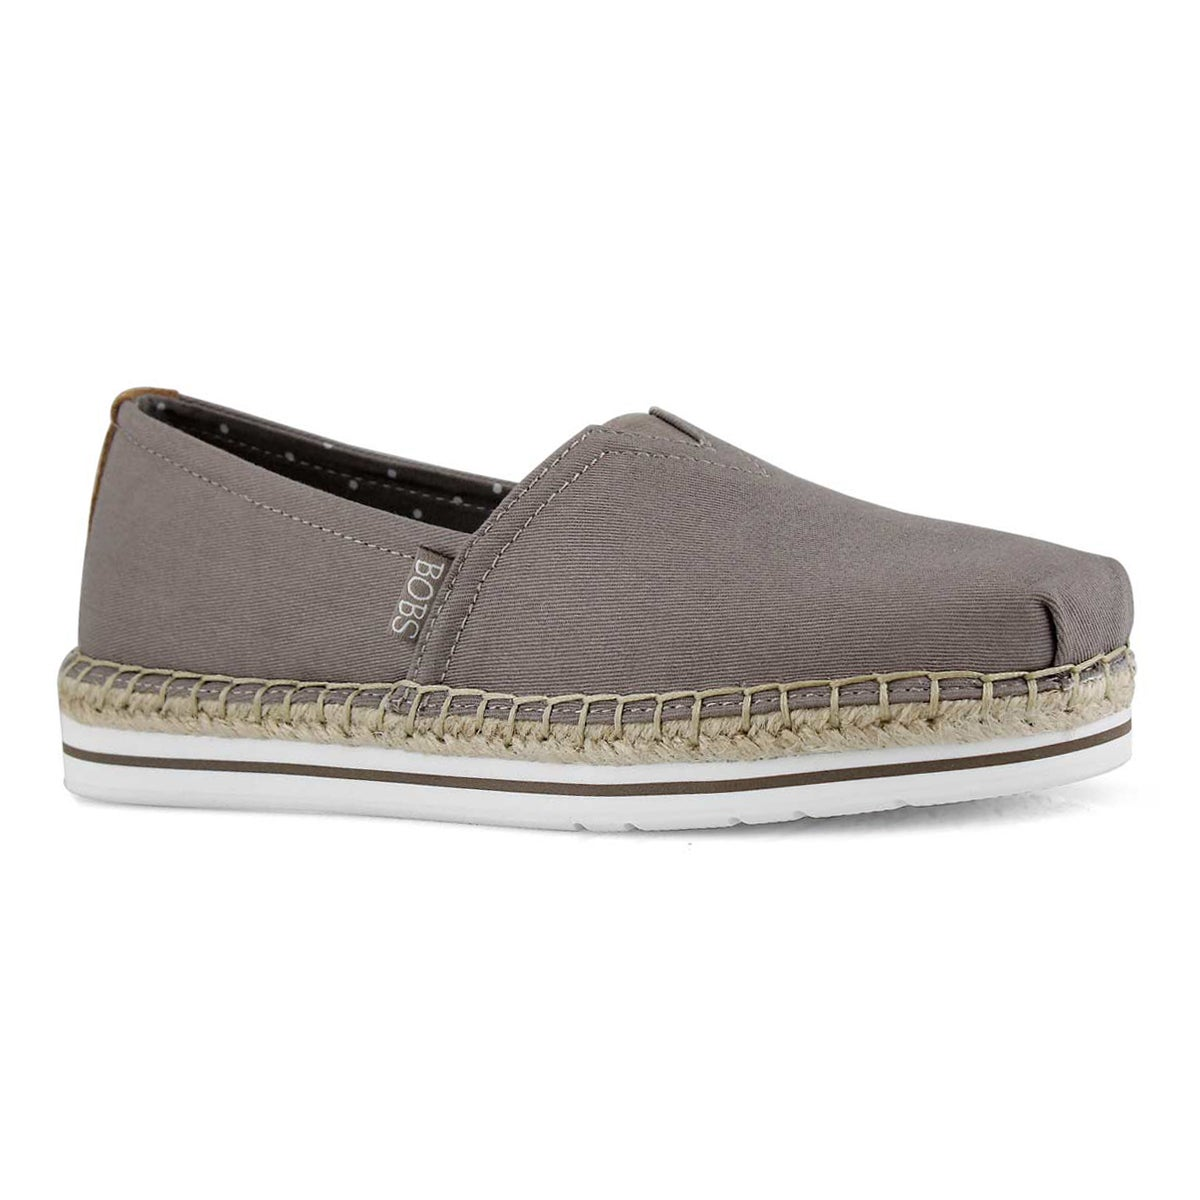 Lds Bobs Breeze taupe slip on shoe